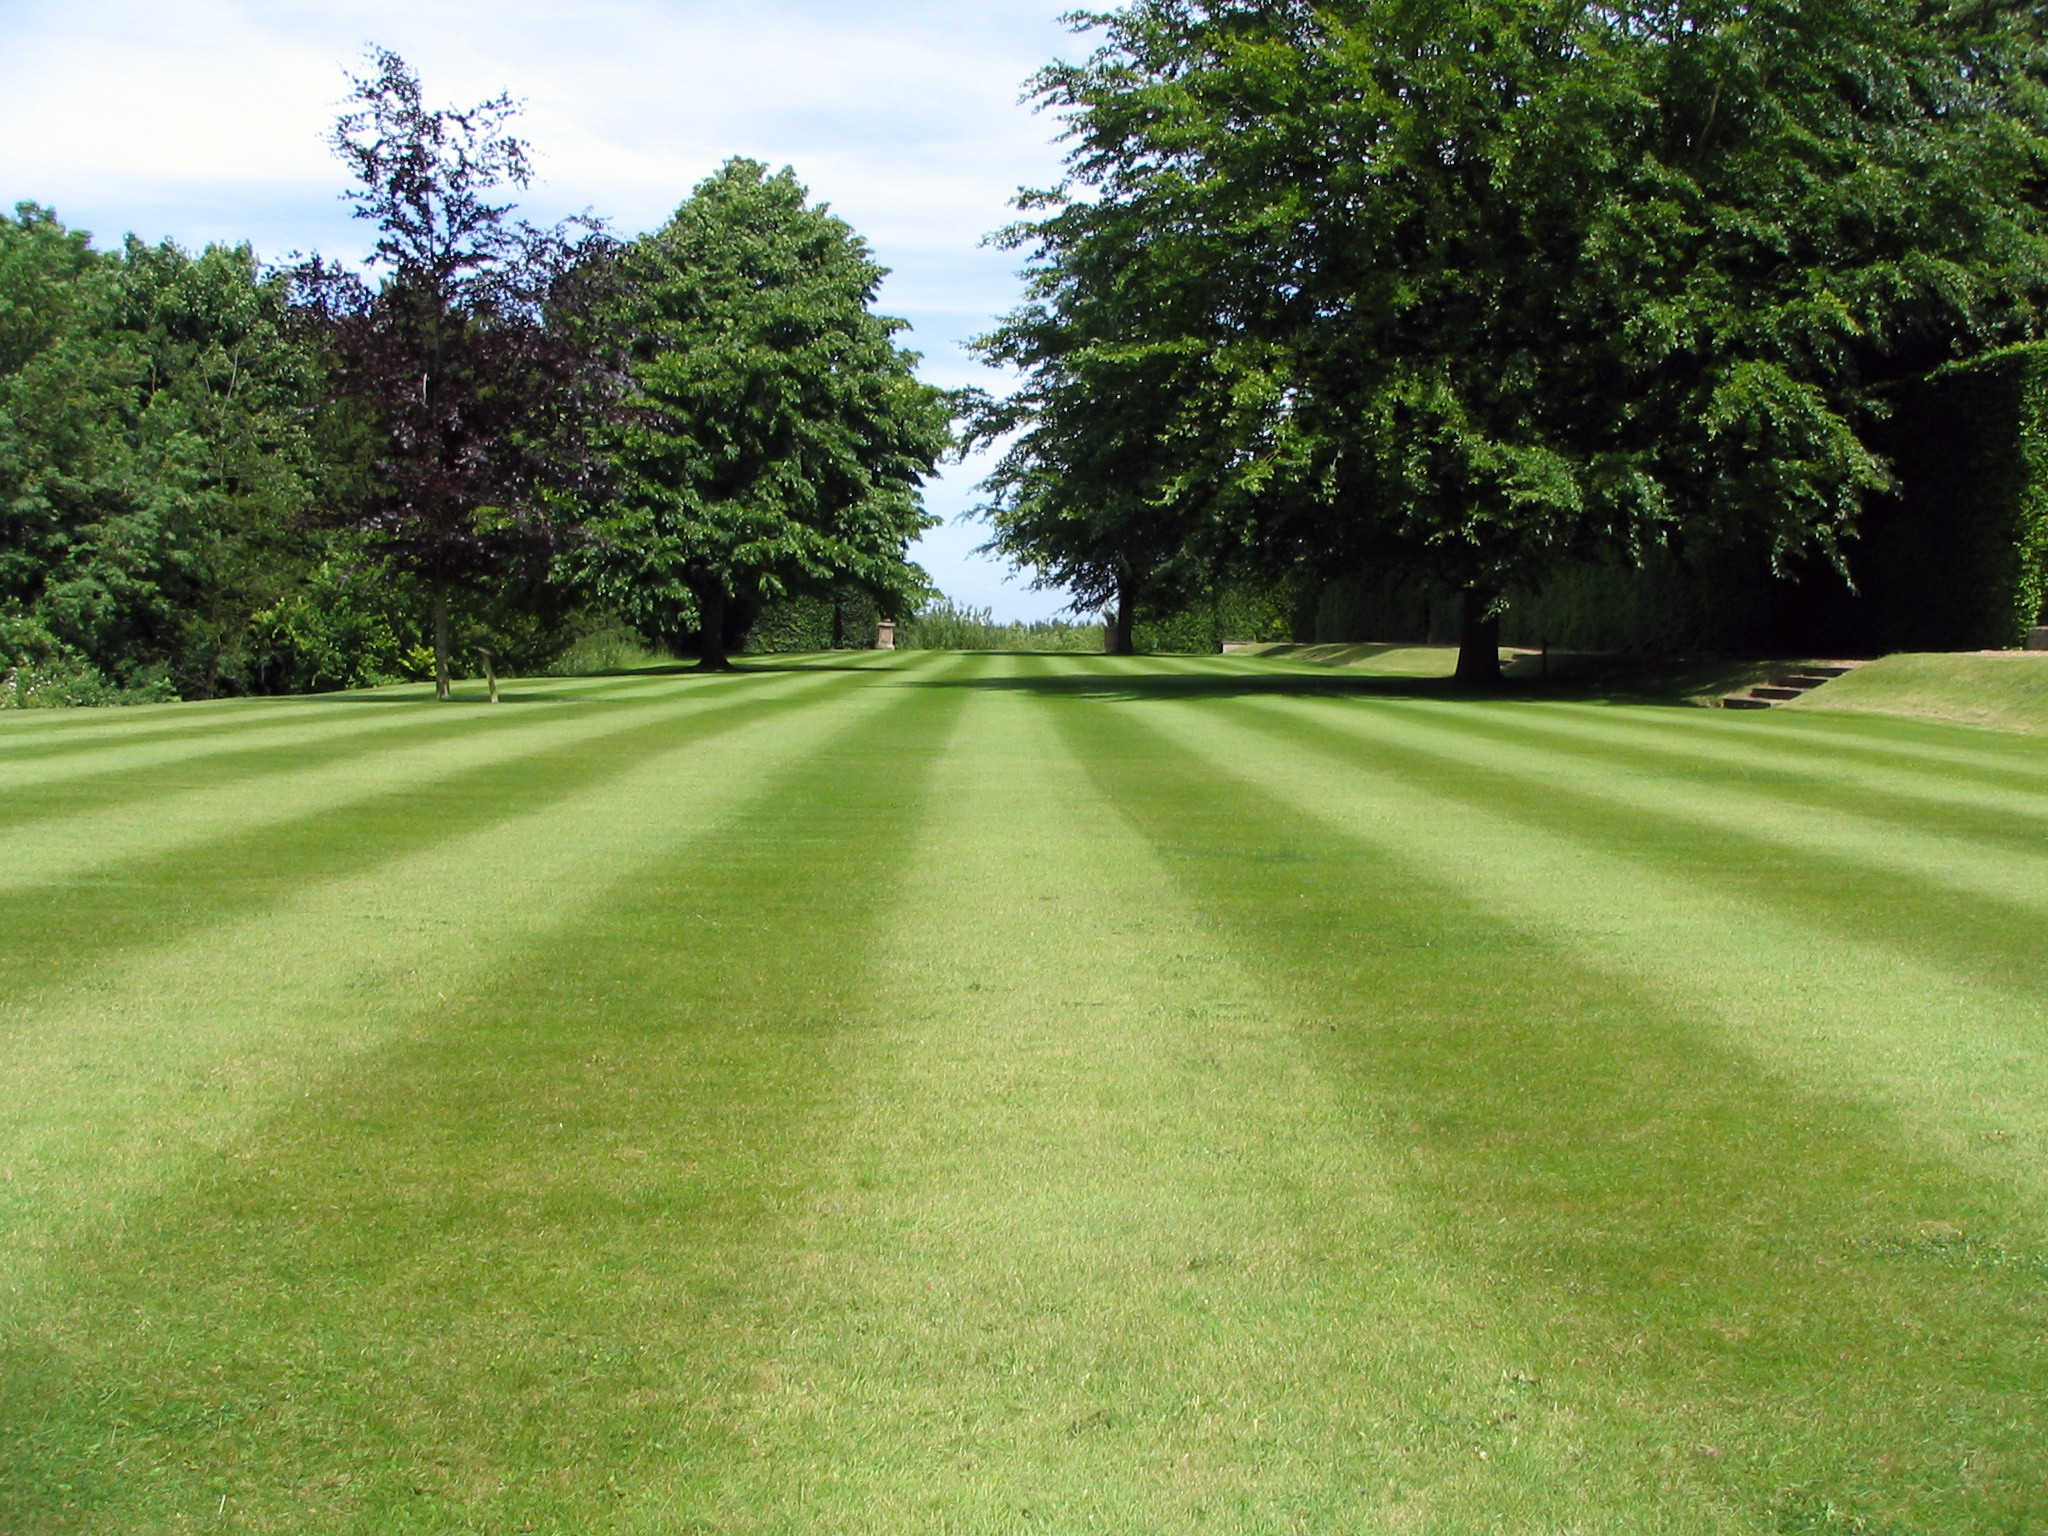 Mowing services in ground maintenance with Fresh cut stripes